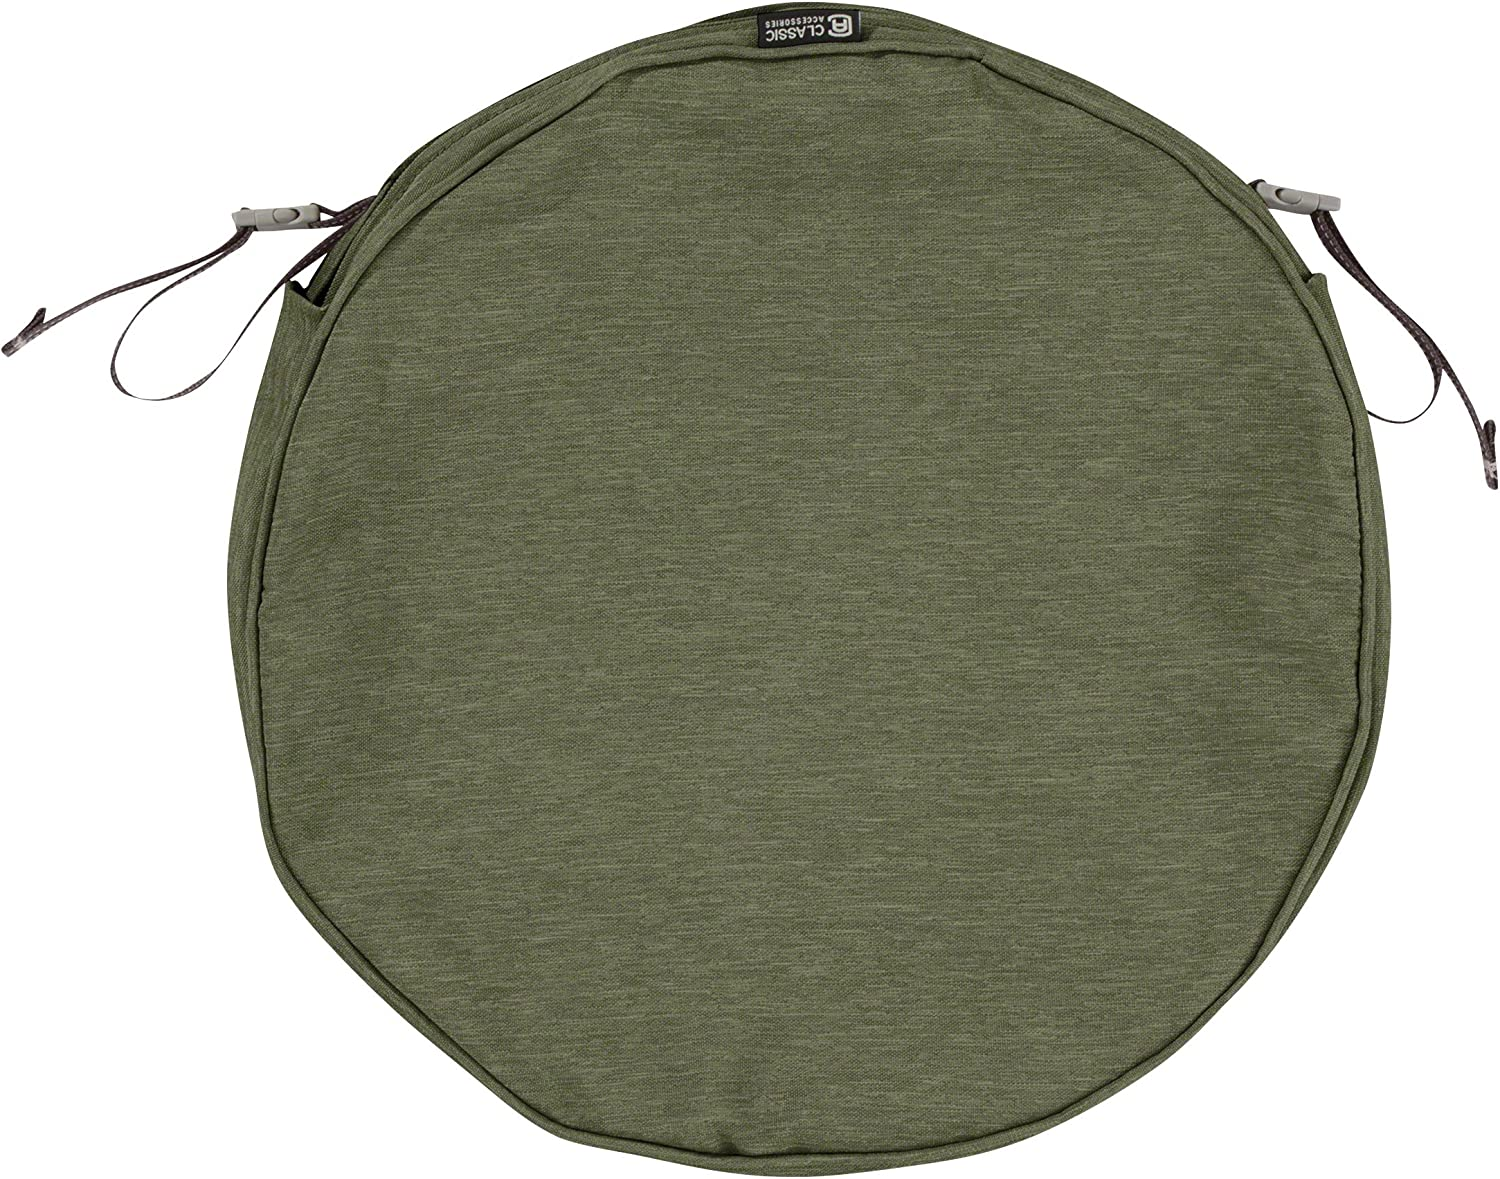 Classic Accessories Montlake Water-Resistant 15 x 2 Inch Round Outdoor Chair Seat Cushion Slip Cover, Patio Furniture Cushion Cover, Heather Fern Green